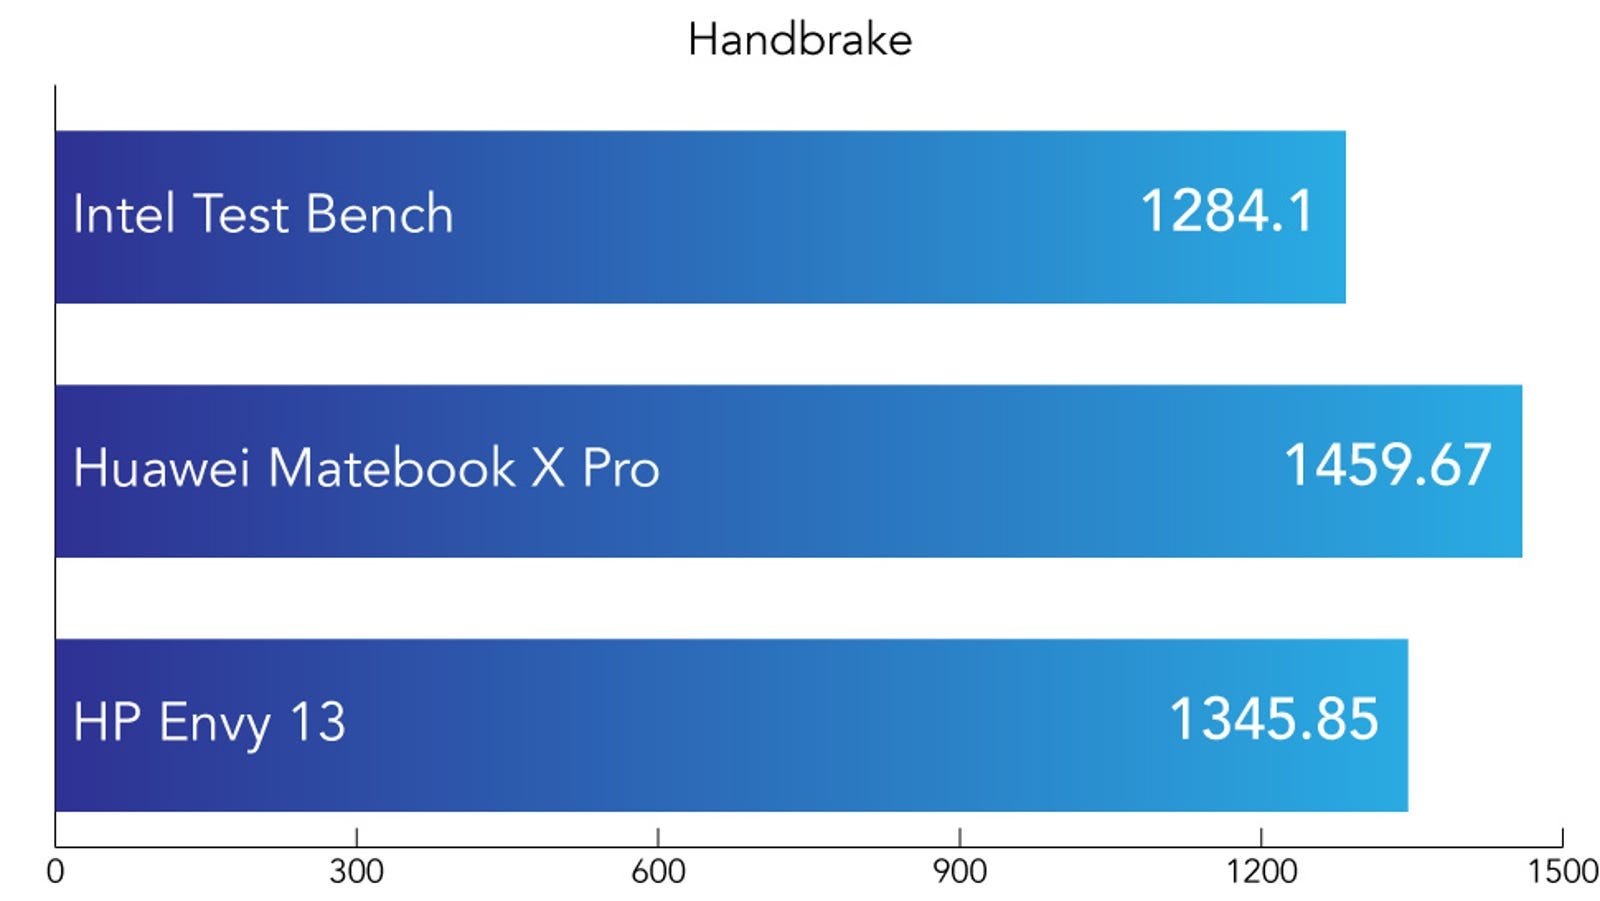 The Handbrake benchmark involves us converting a 4K video to 1080p. The time is measured in seconds. Shorter is better.